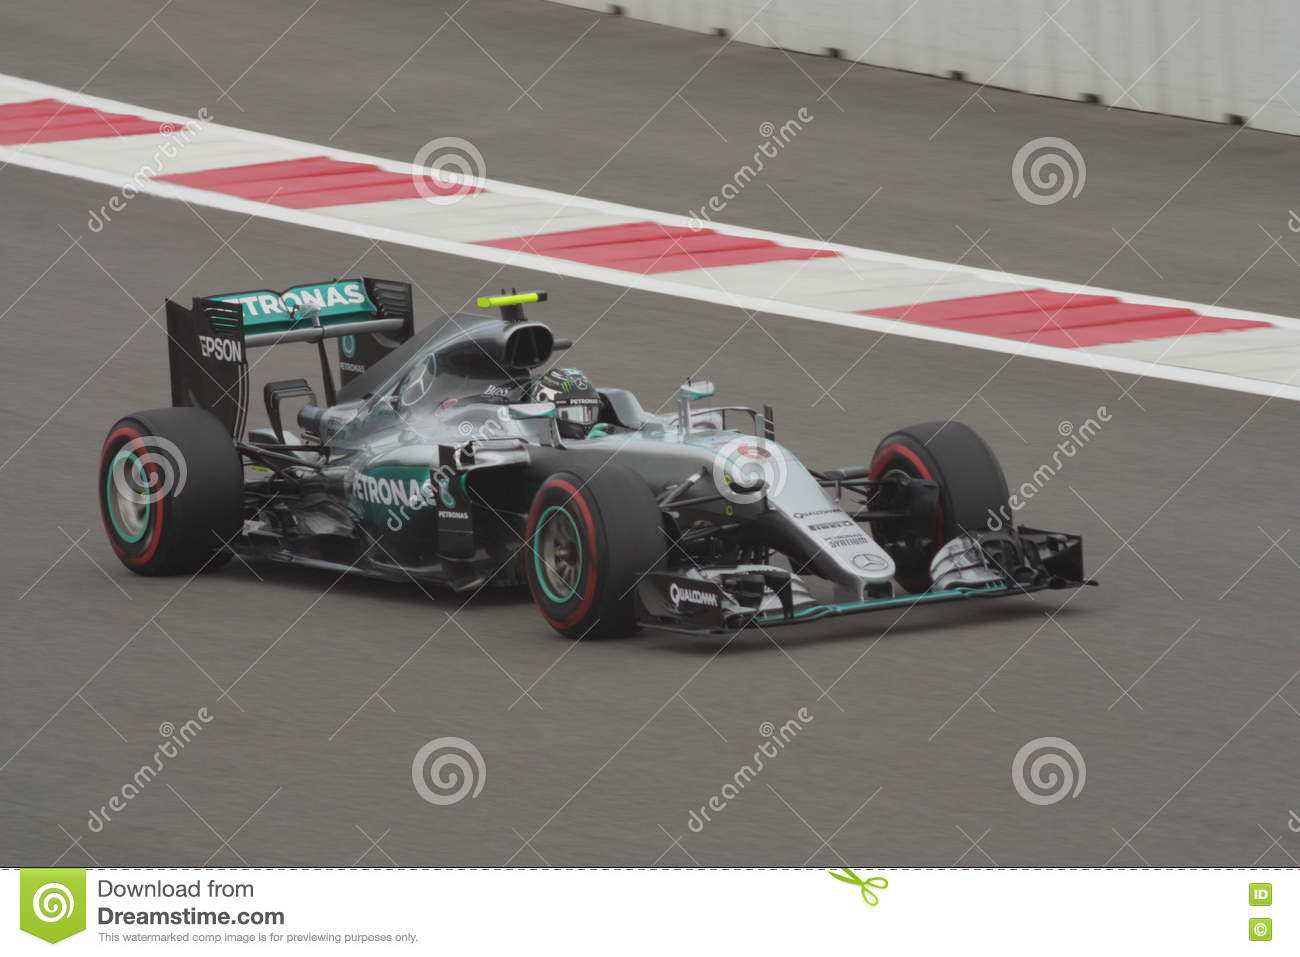 d2a08b06241 Nico Rosberg of Mercedes AMG Petronas F1 Team on the racetrack. Front view  . Race car tires supersoft red colour coding